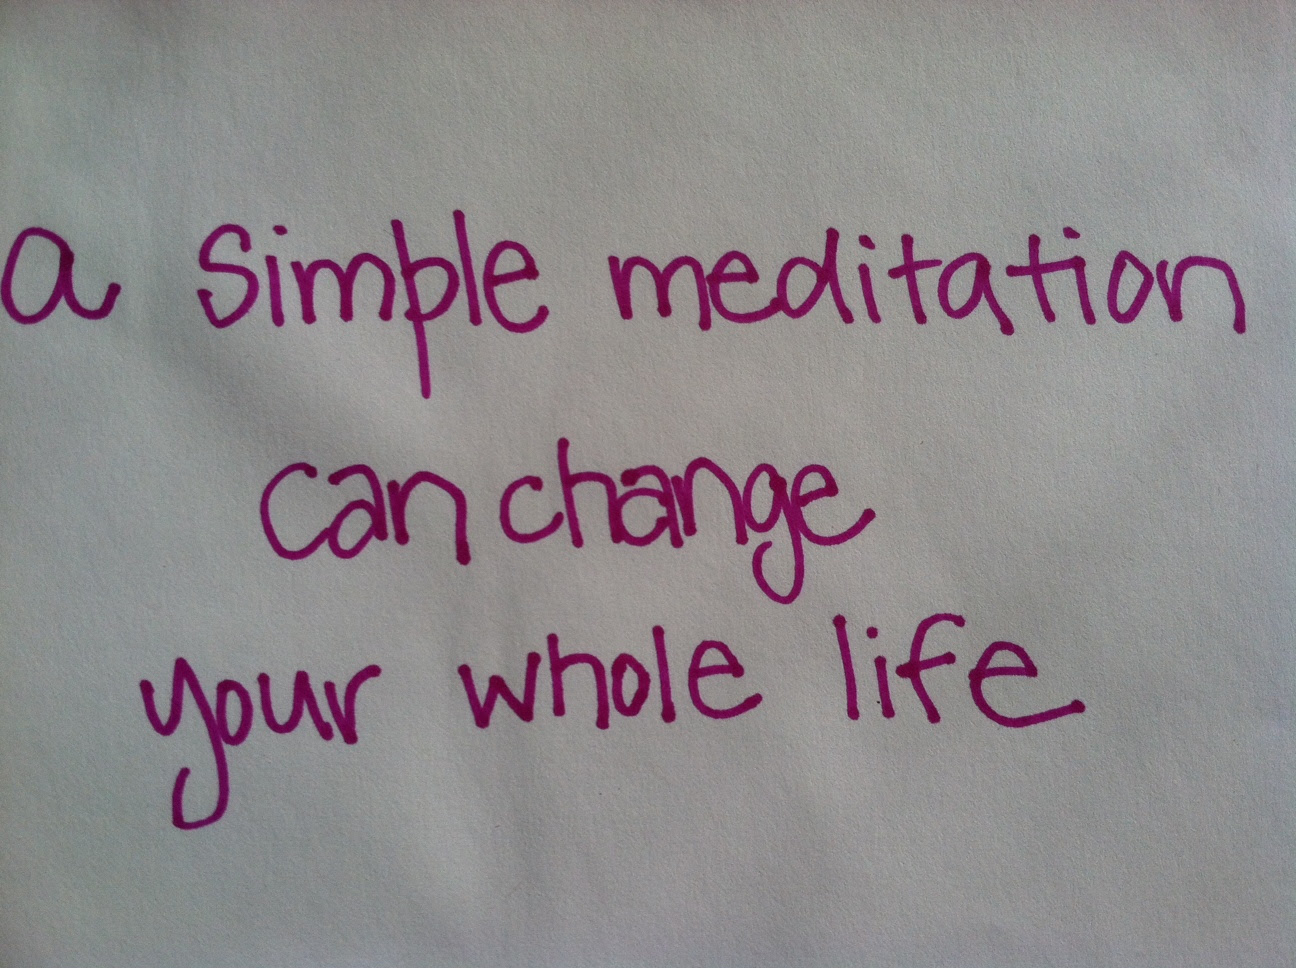 A simple meditation can change your whole life